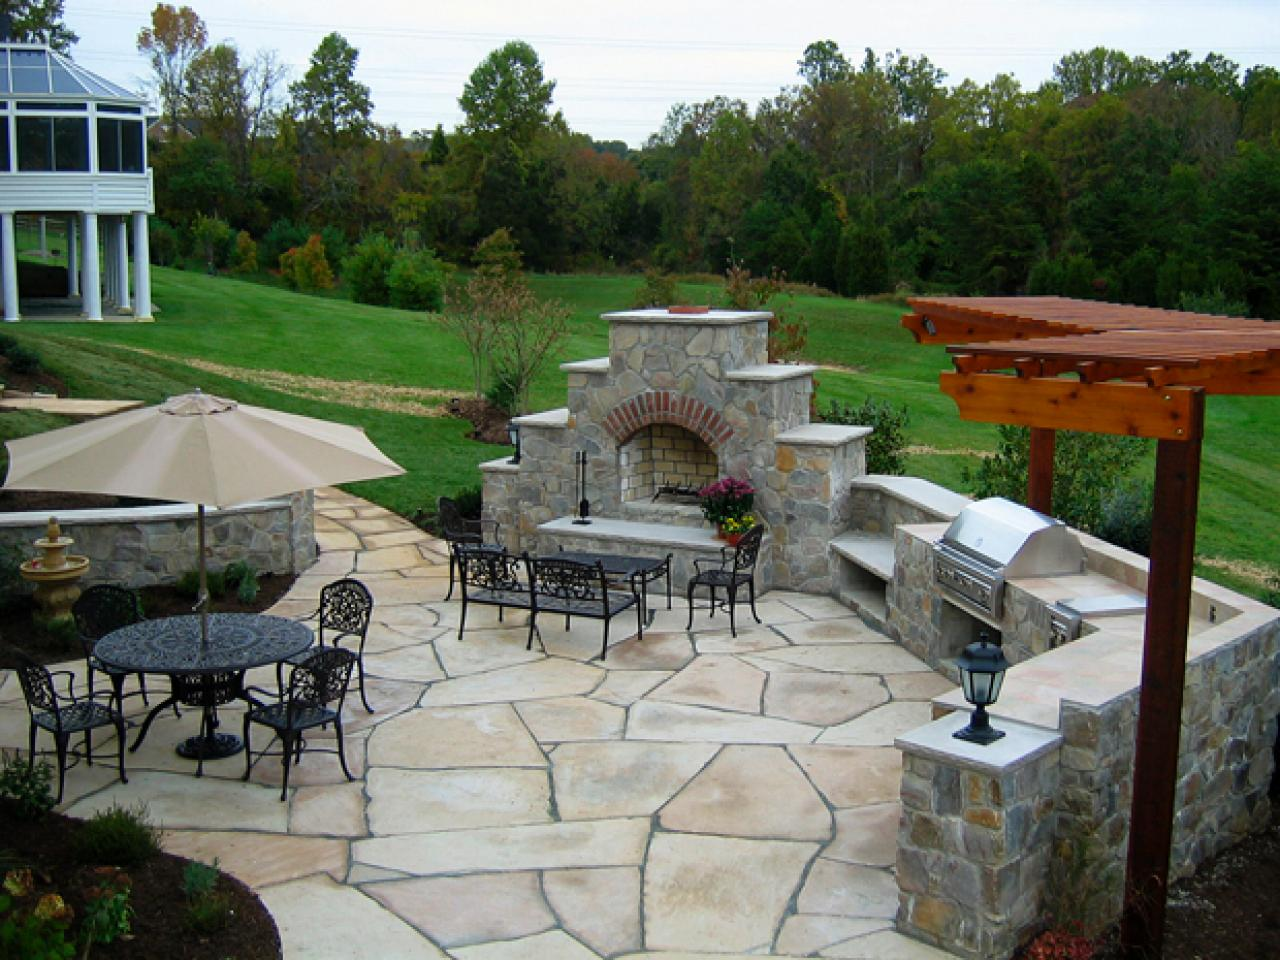 deck-vs-patio-which-one-should-you-choose-add-value-to-your-home-debi-collinson